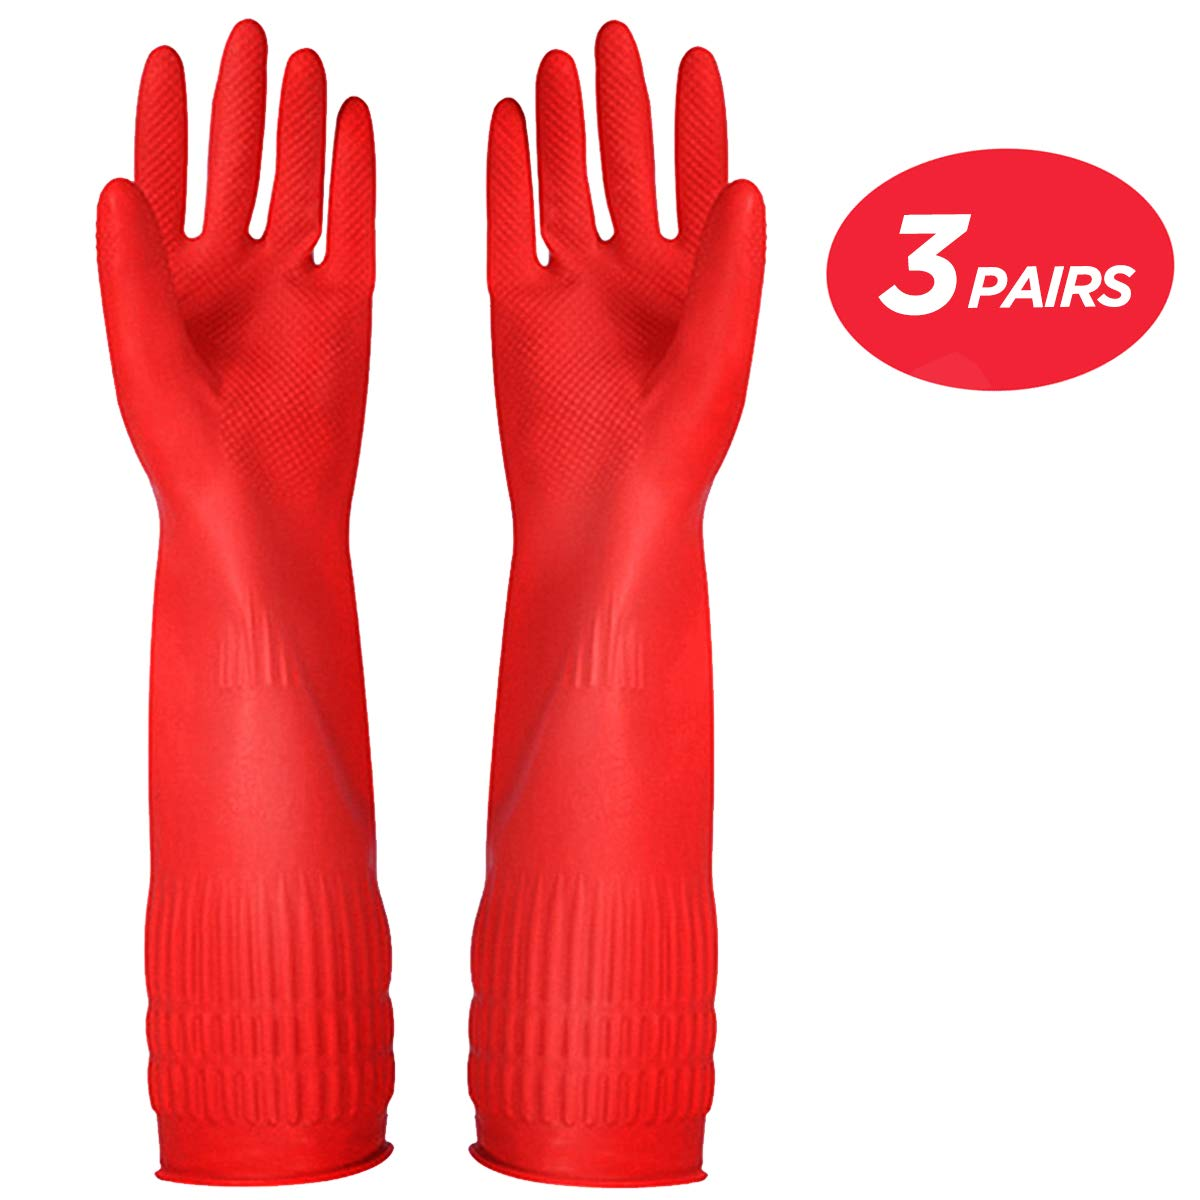 Rubber Cleaning Gloves Kitchen Dishwashing Glove 3-Pairs,Waterproof Reuseable.(Large)